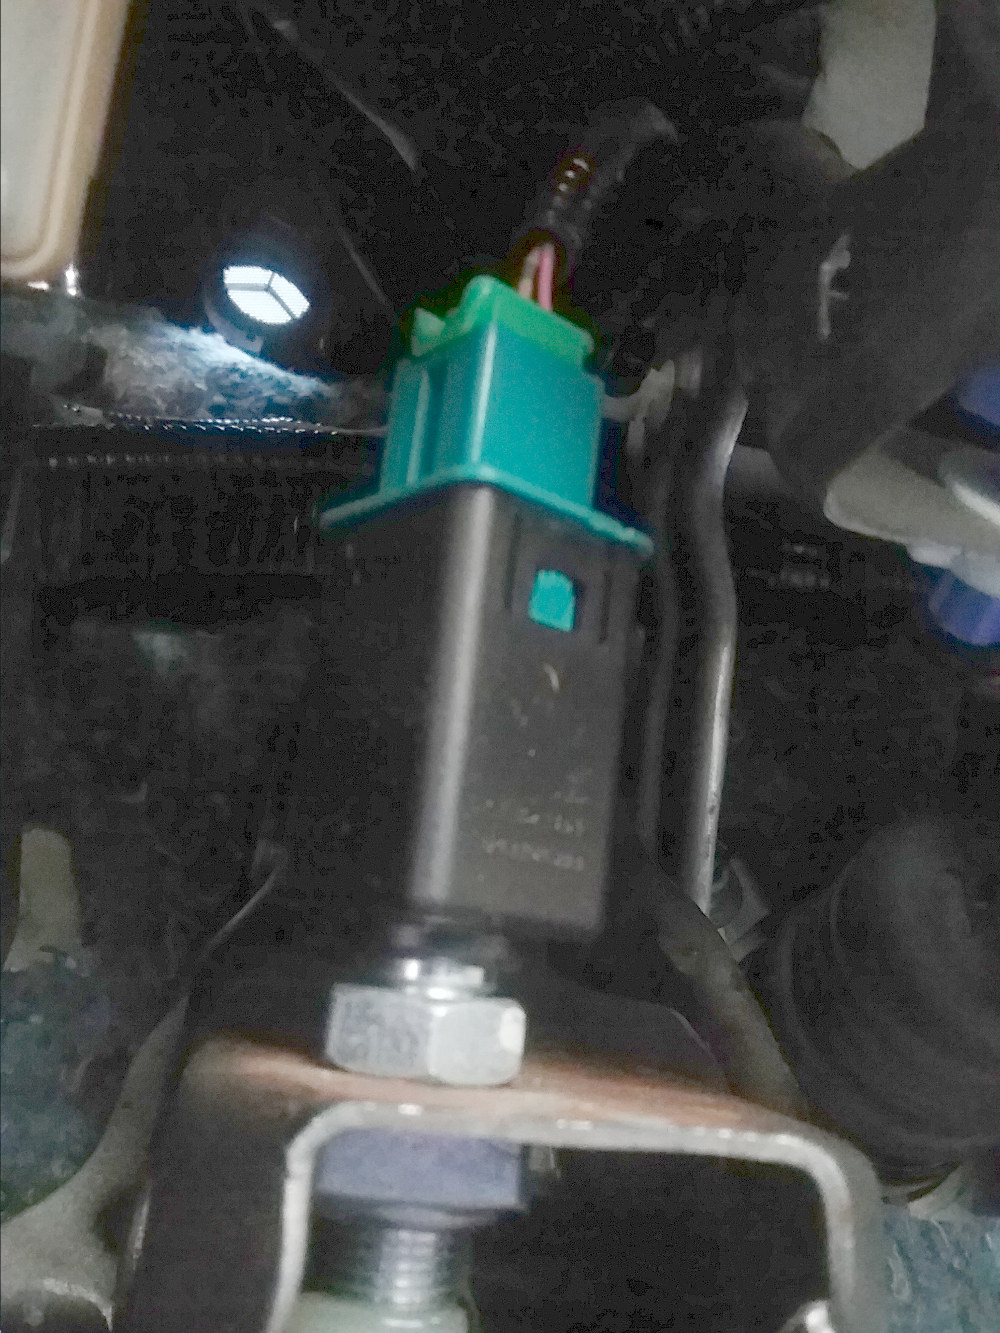 Honda Fit 2016, Replace the clutch interlock switch, which is behind the green clutch pedal position switch  (black rectangle piece). Photo 7 by Don Tai